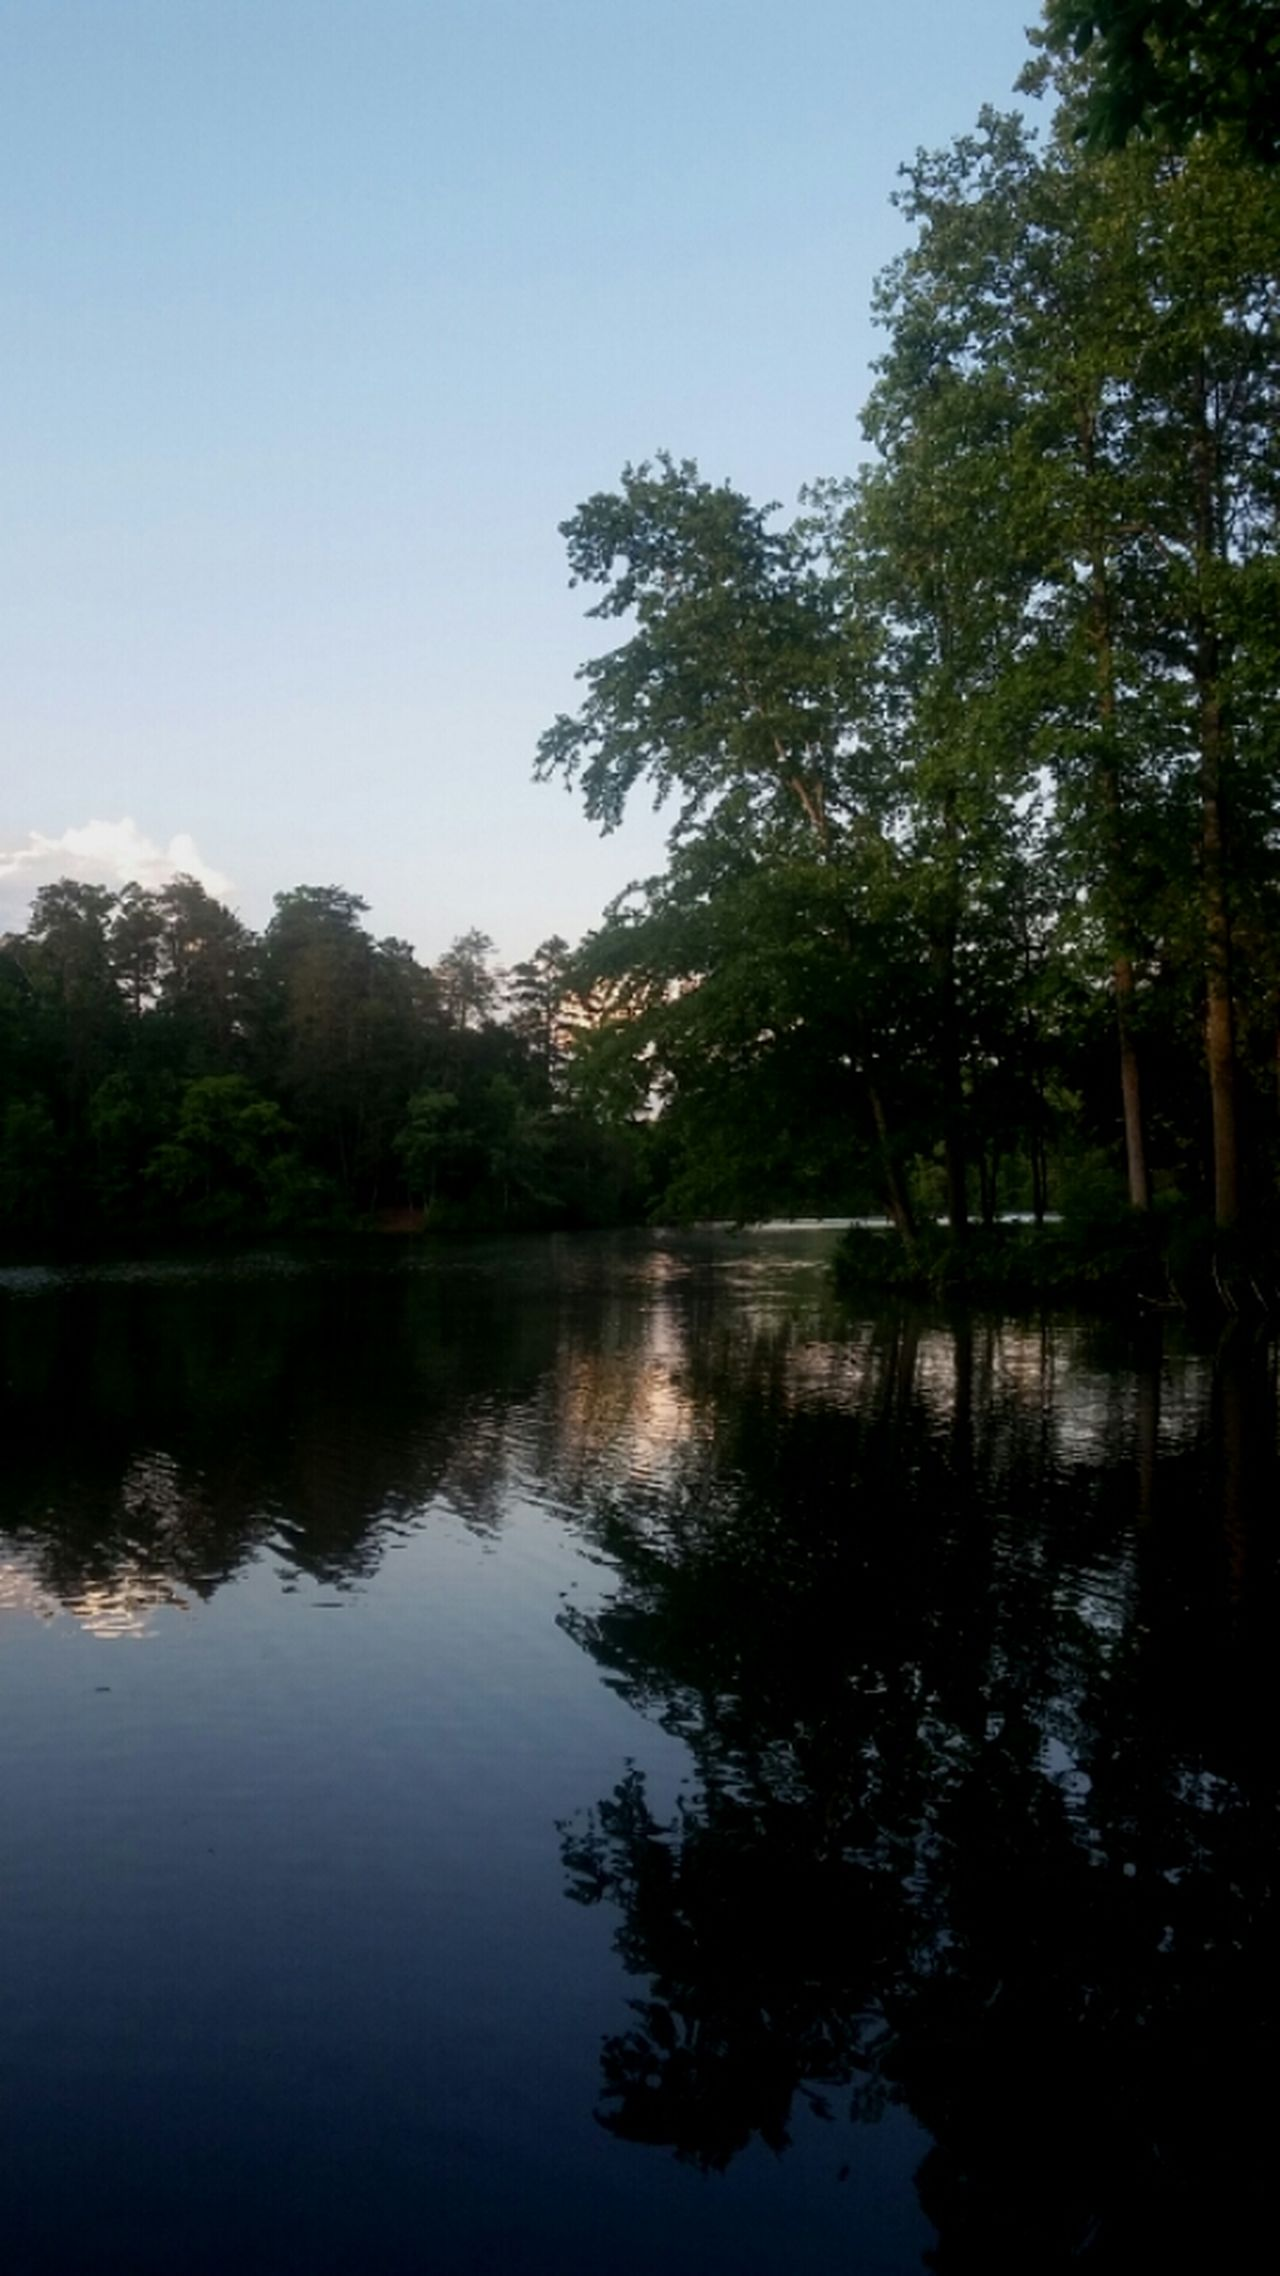 Paris Mountain State Park South Carolina Reflections In The Water Trees Nature Photography Amateur Photography